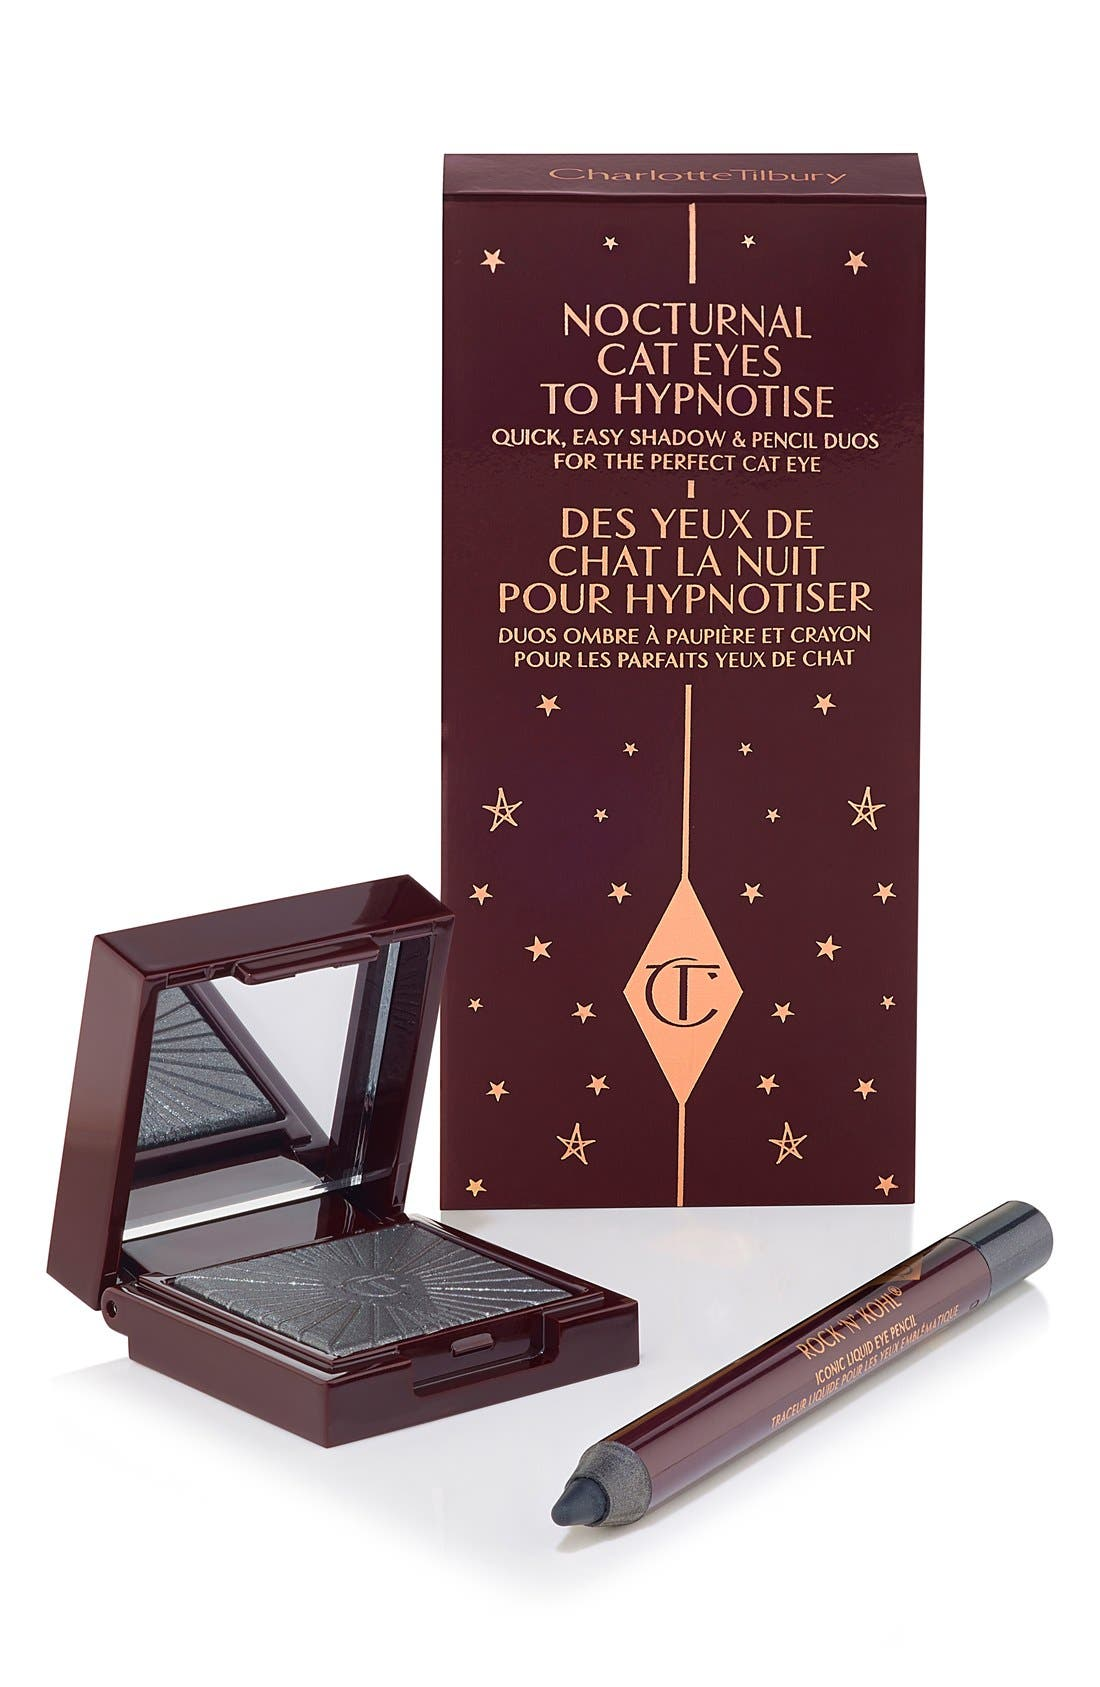 Charlotte Tilbury 'Nocturnal Cat Eyes to Hypnotise' Eyeshadow & Eye Pencil Duo (Limited Edition)